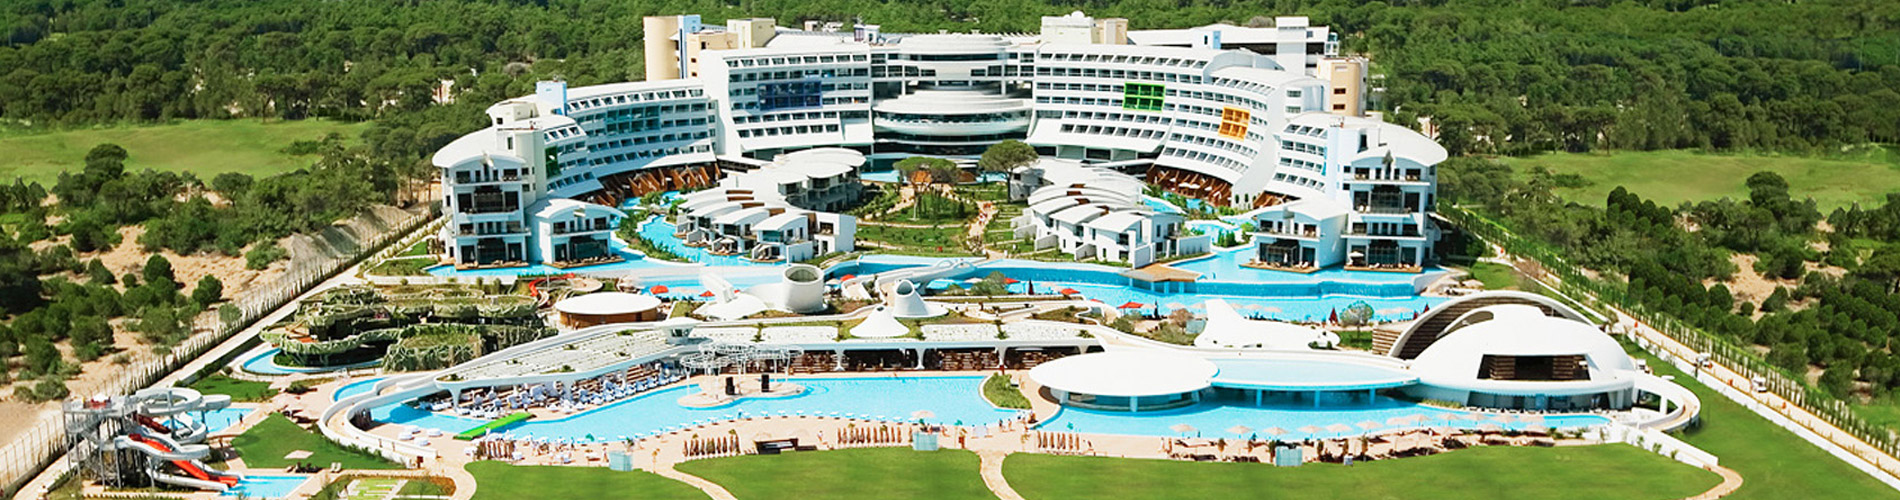 Hotel Cornelia Diamond Golf Resort Spa